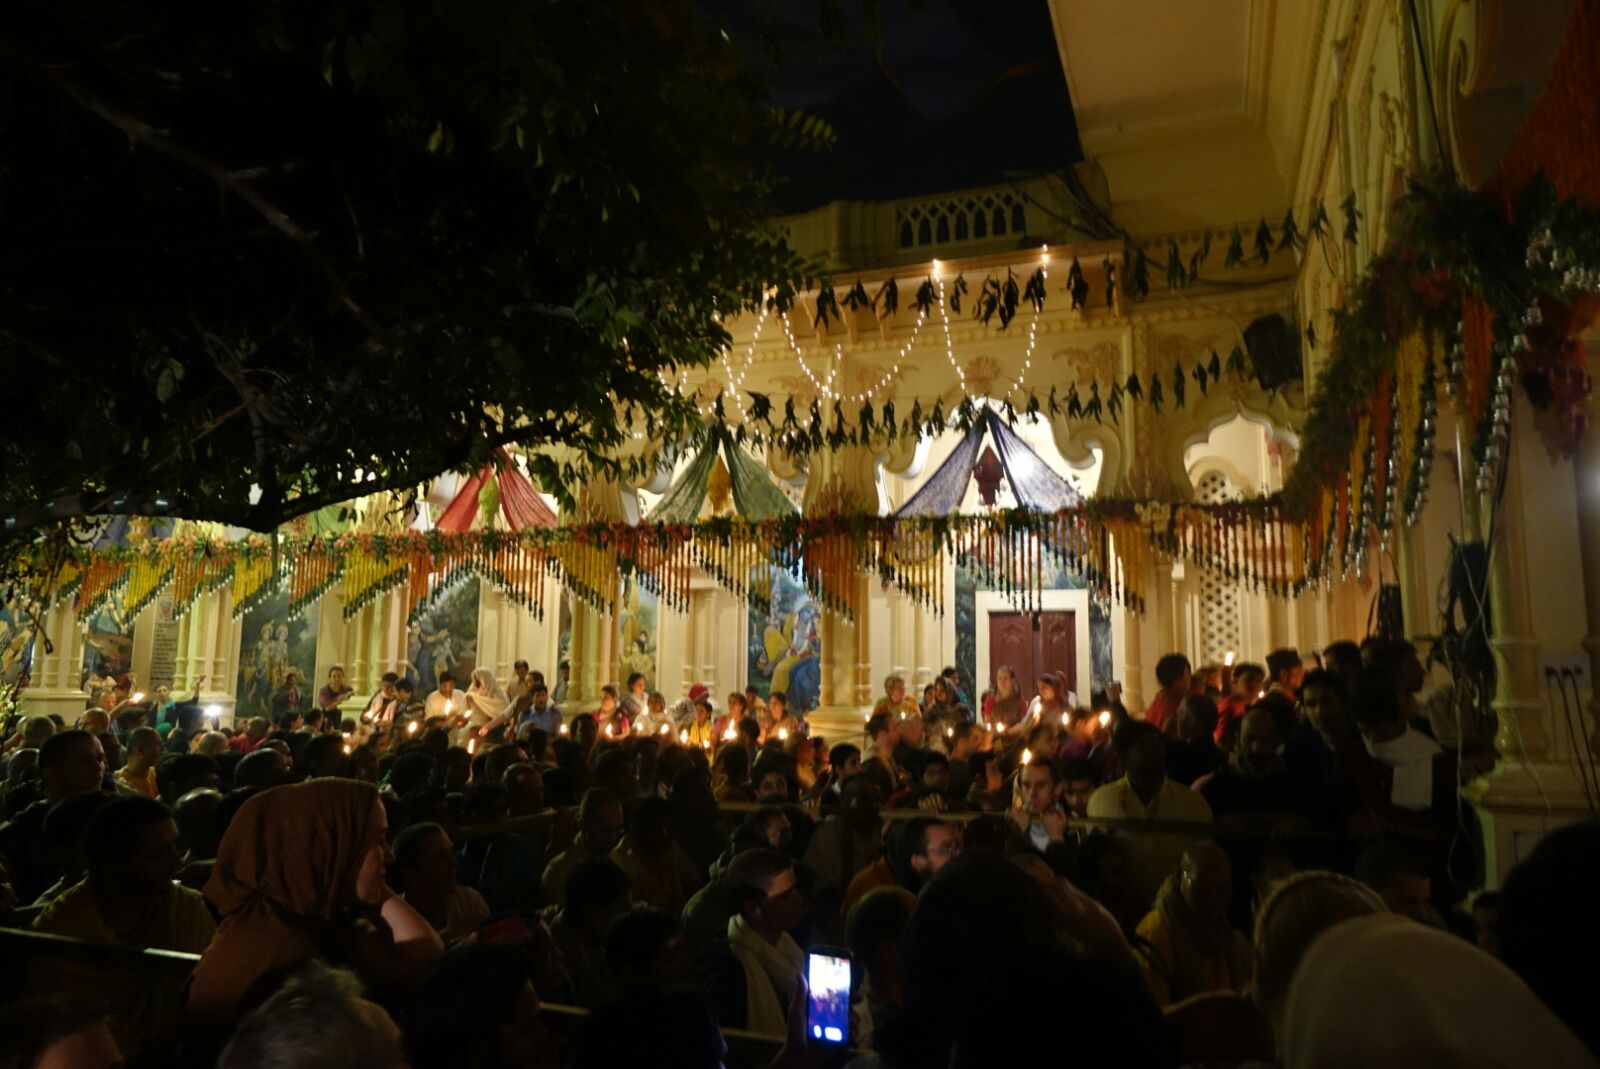 Thousands of people offering lamps in a temple in Vrindavan